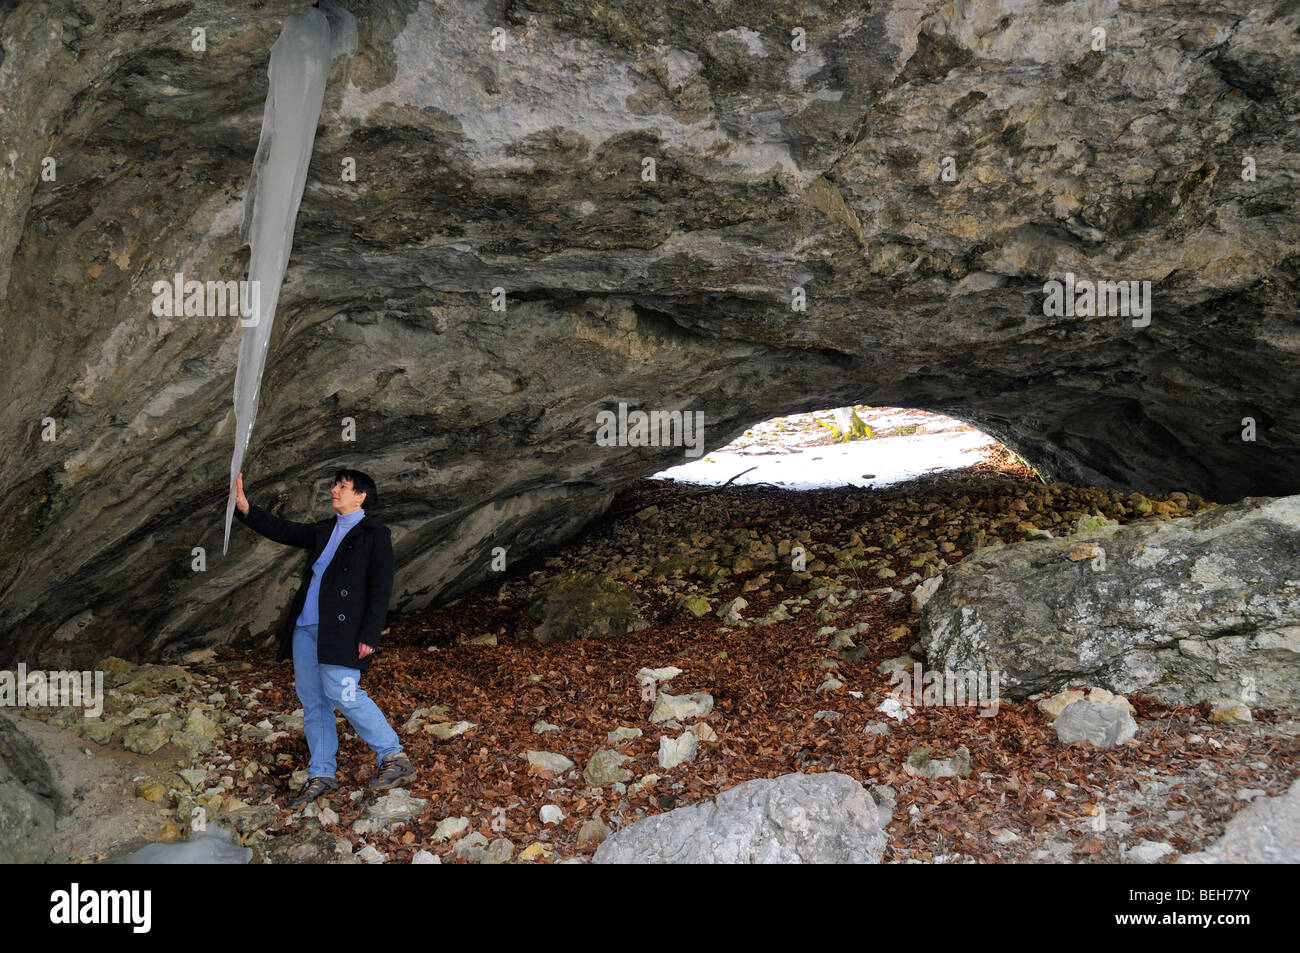 Woman looking at big icicle in a cave (Lengenfelsdurchgangshöhle), Baden-Württemberg, Germany - Stock Image